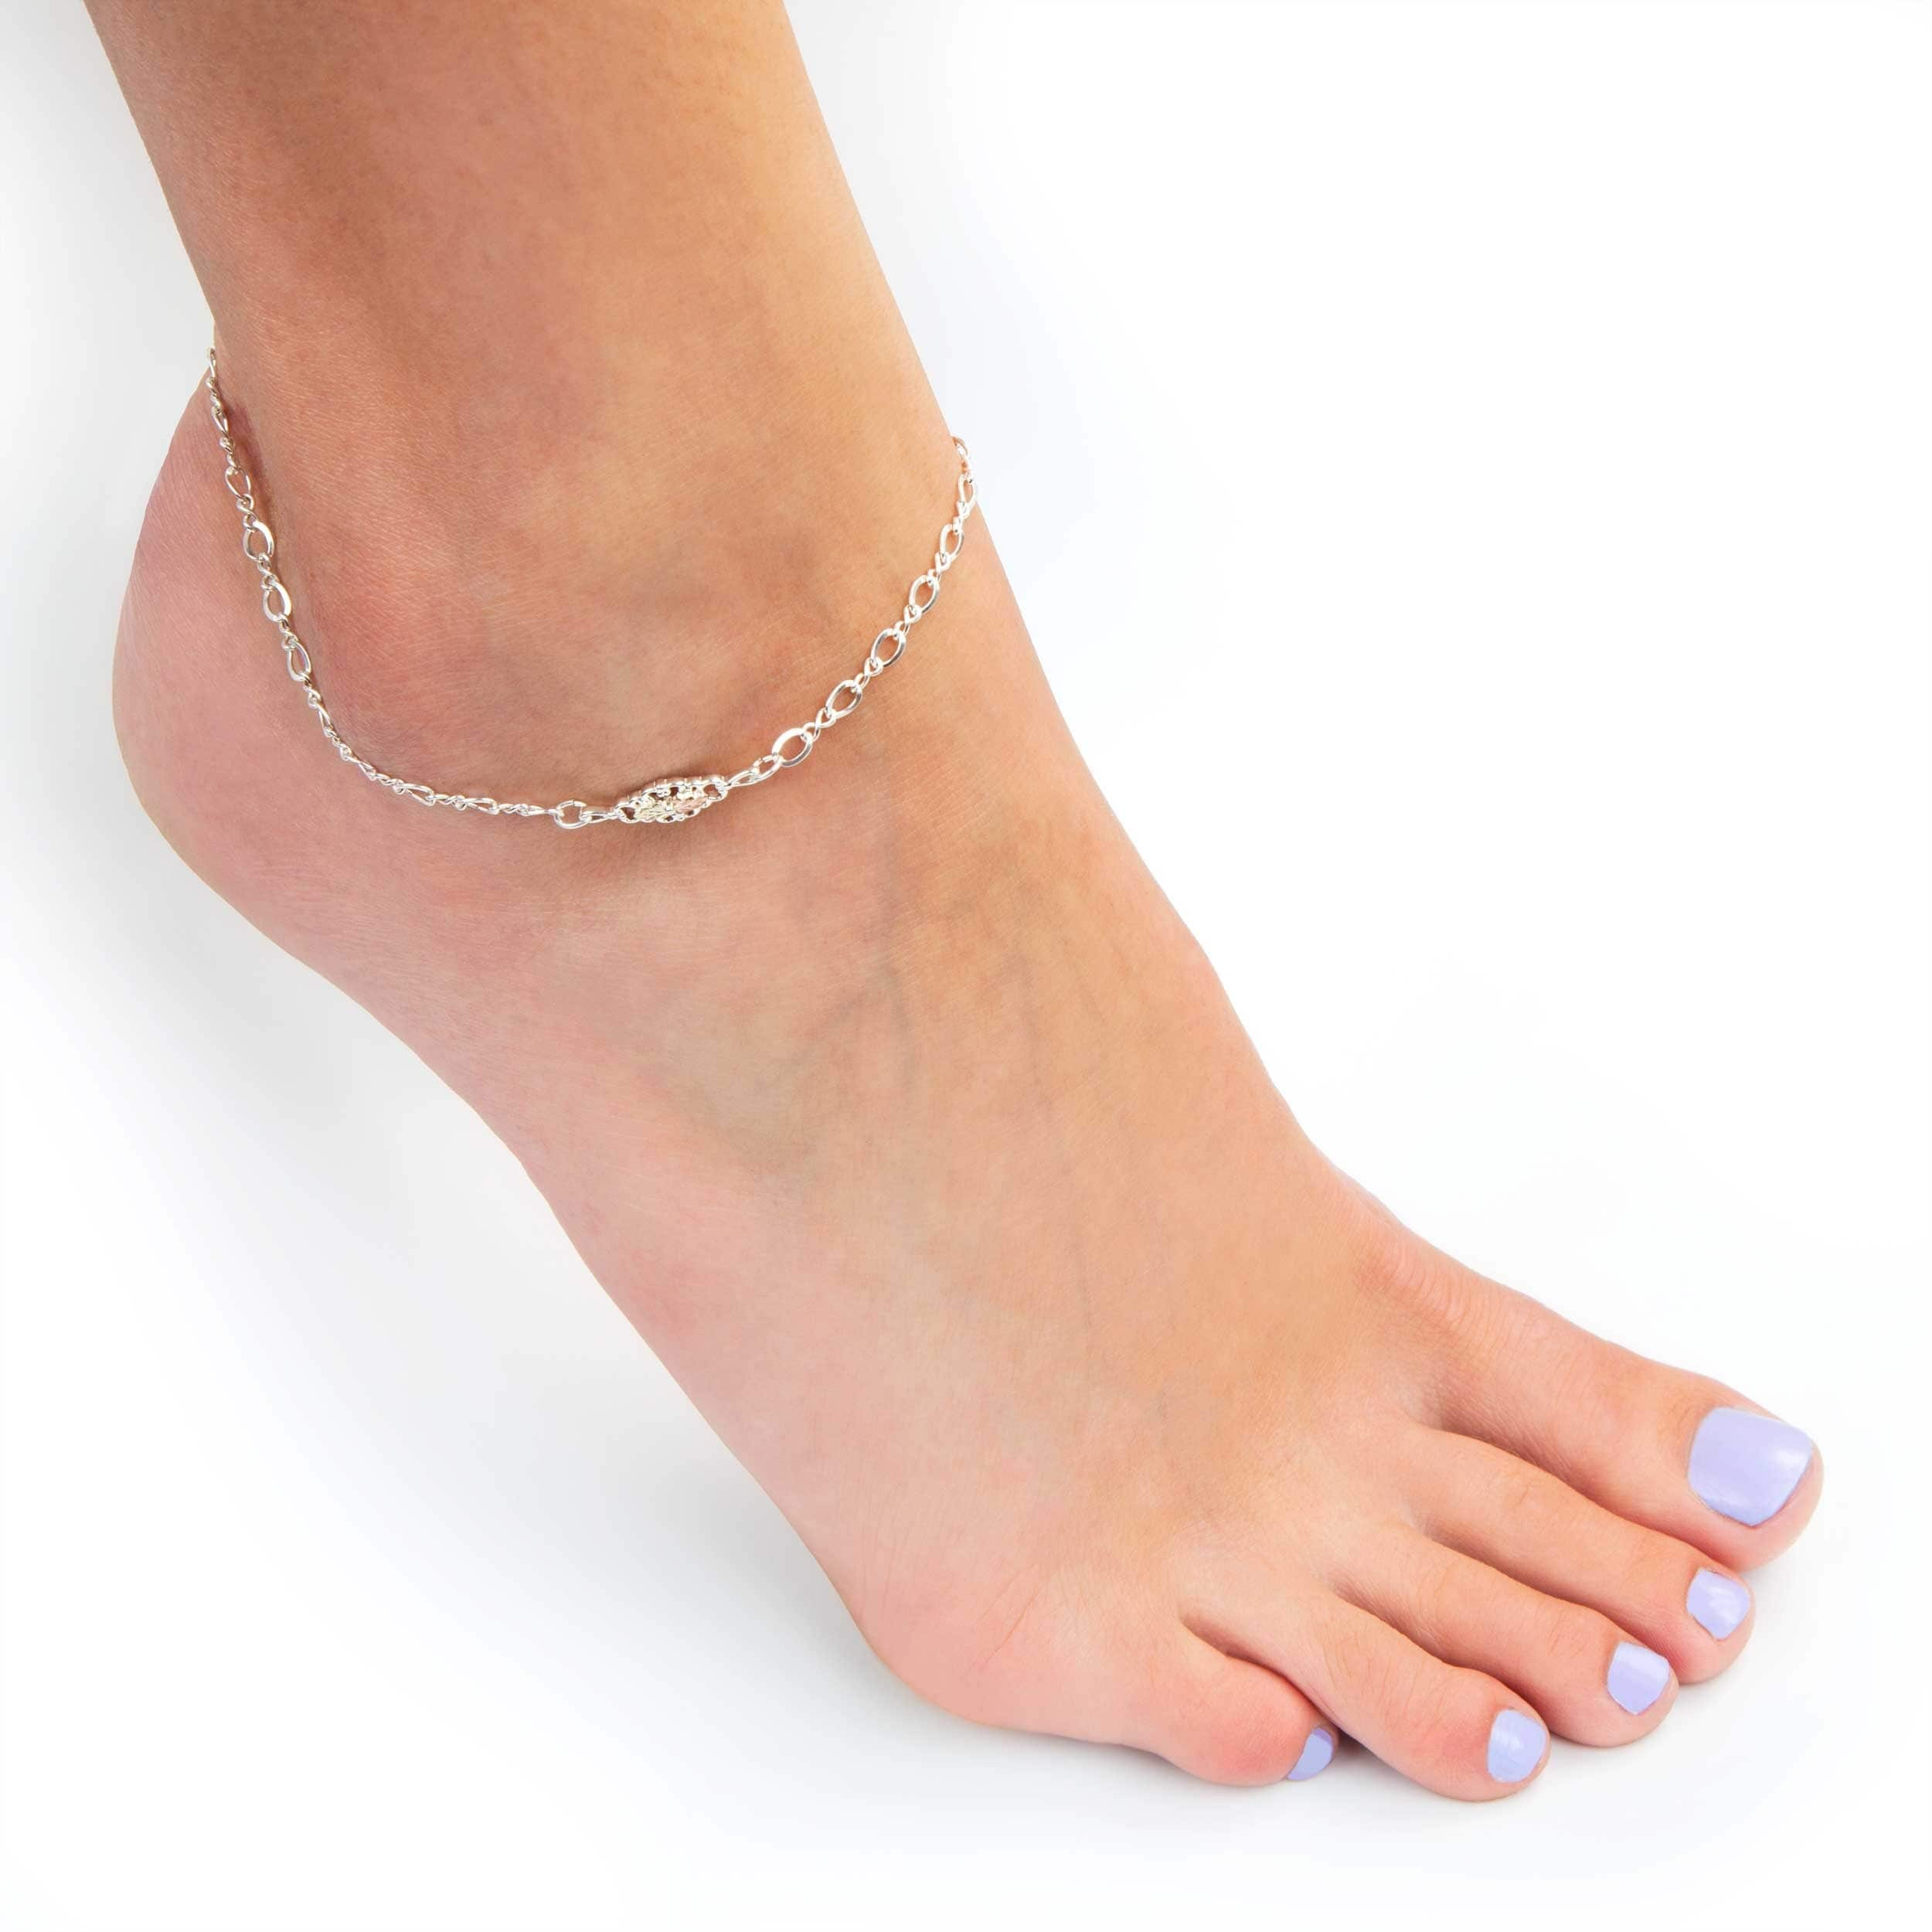 interlocked for bauer gold women anklets anklet chain